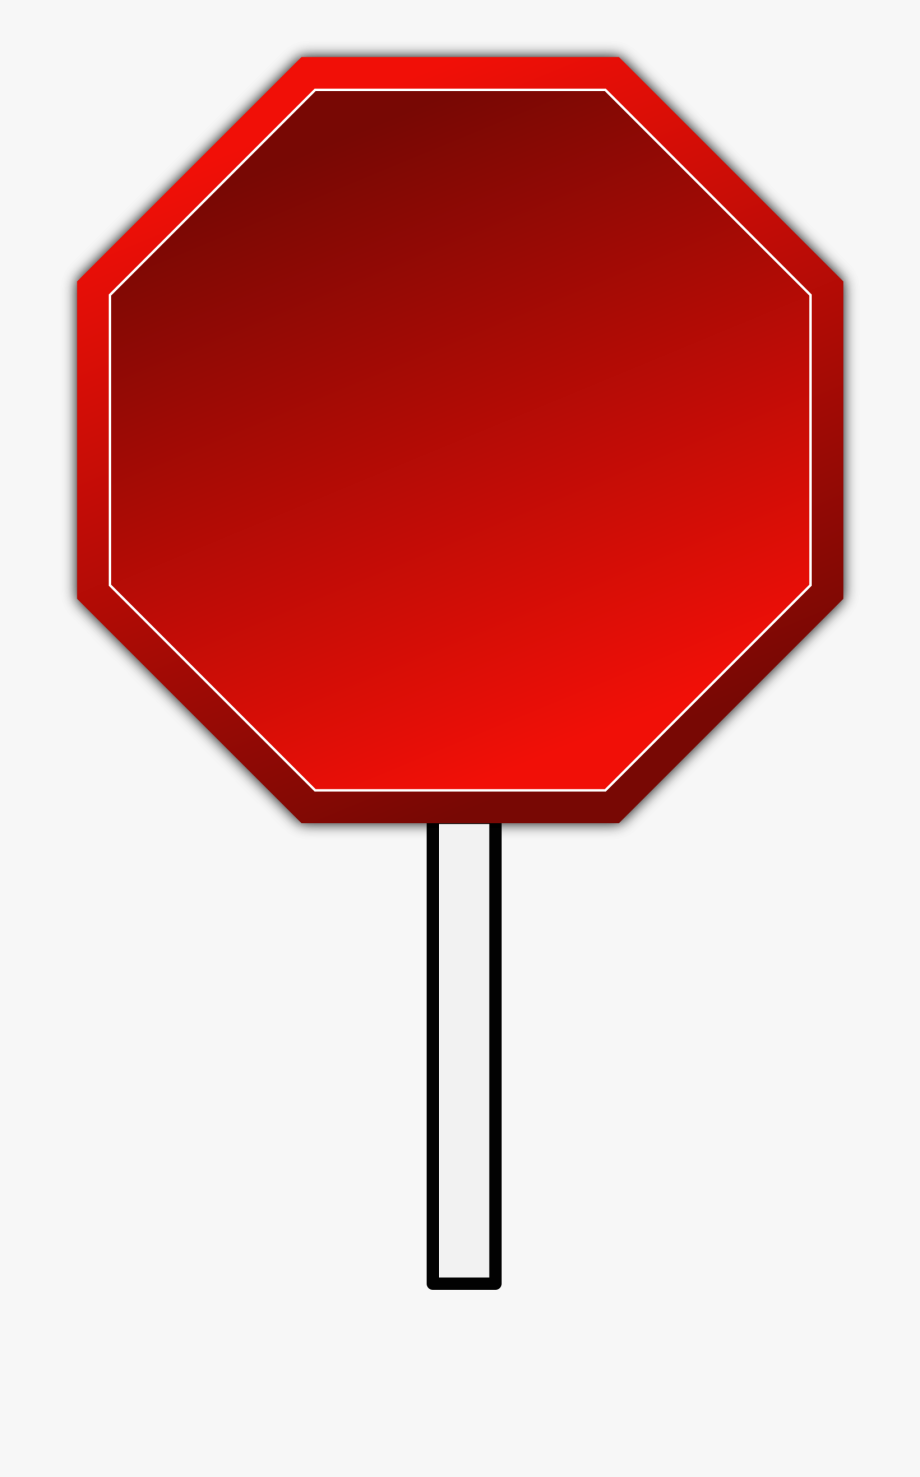 Clipart stopsign clipart royalty free library Great 19 Clipart Of Stop Sign Huge Freebie Download - Handheld Stop ... clipart royalty free library